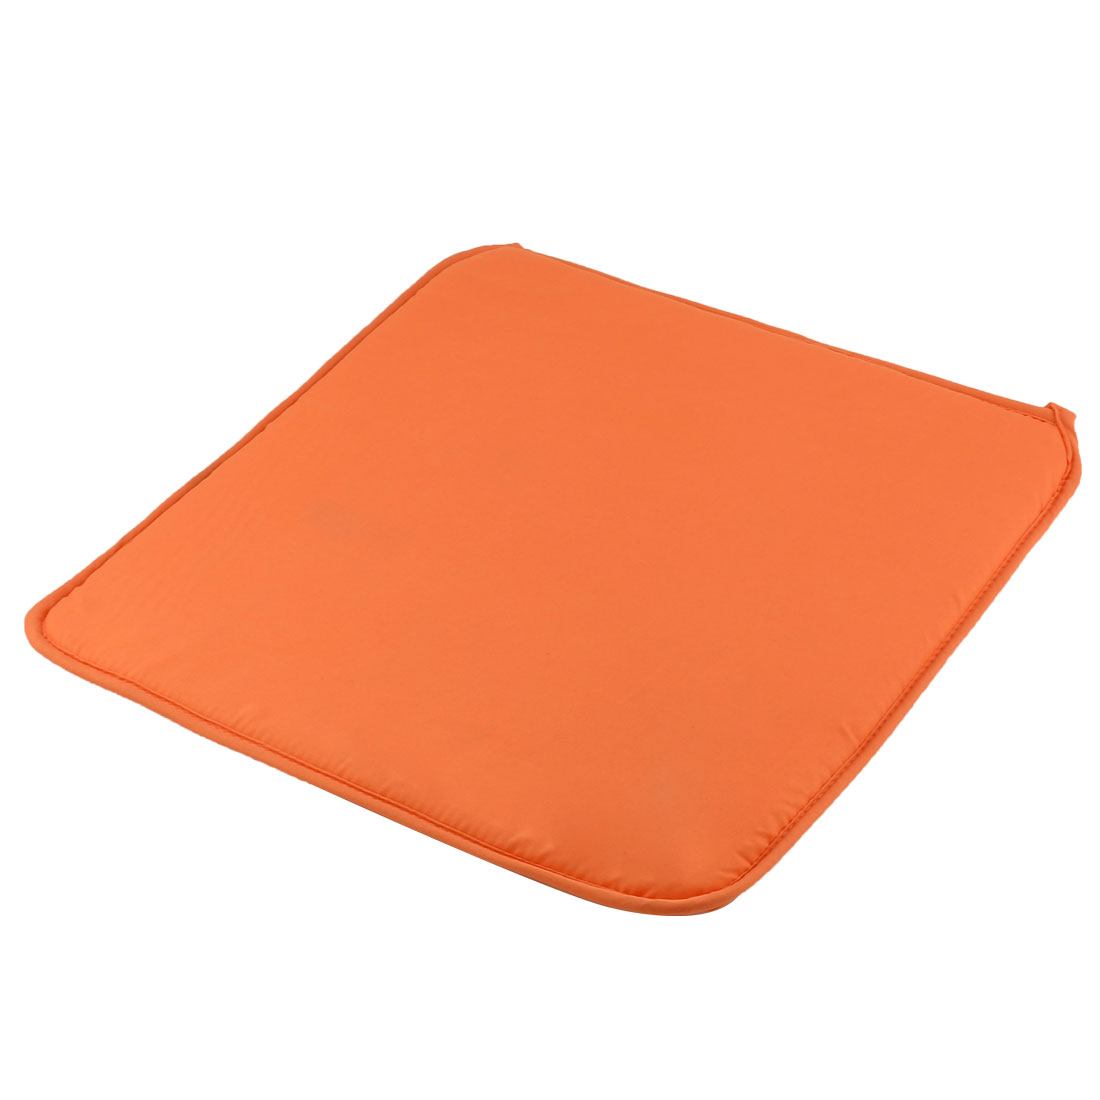 Home Office Sponge Solid Anti Slip Seat Chair Cushion Pad Cover Orange 39 x 39cm